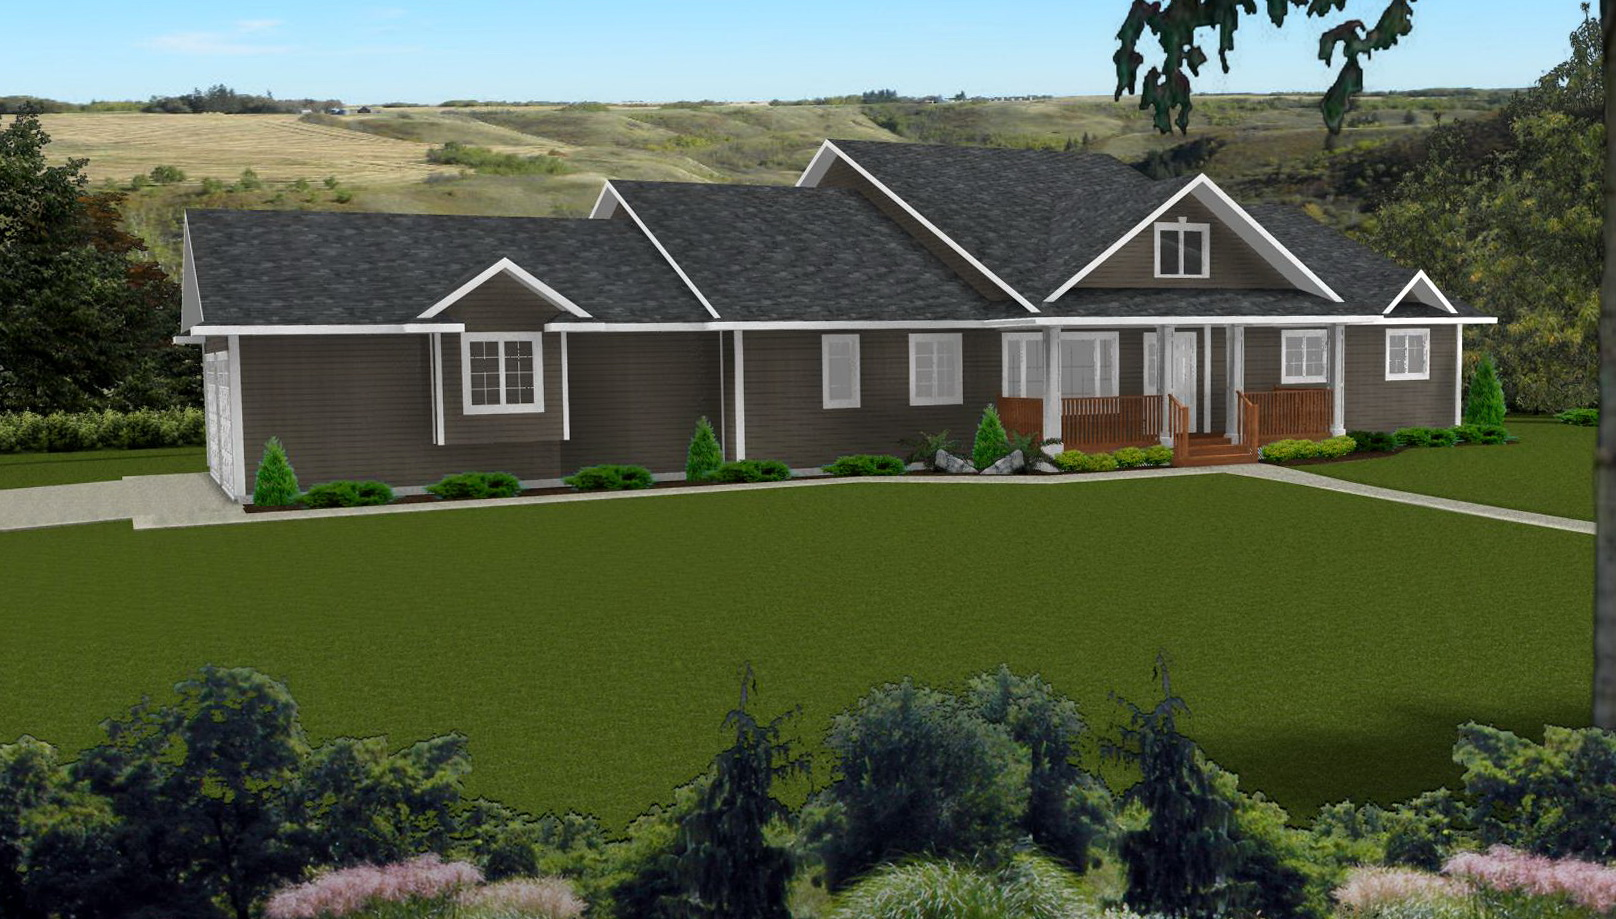 Ranch Style House Plans With Covered Porch